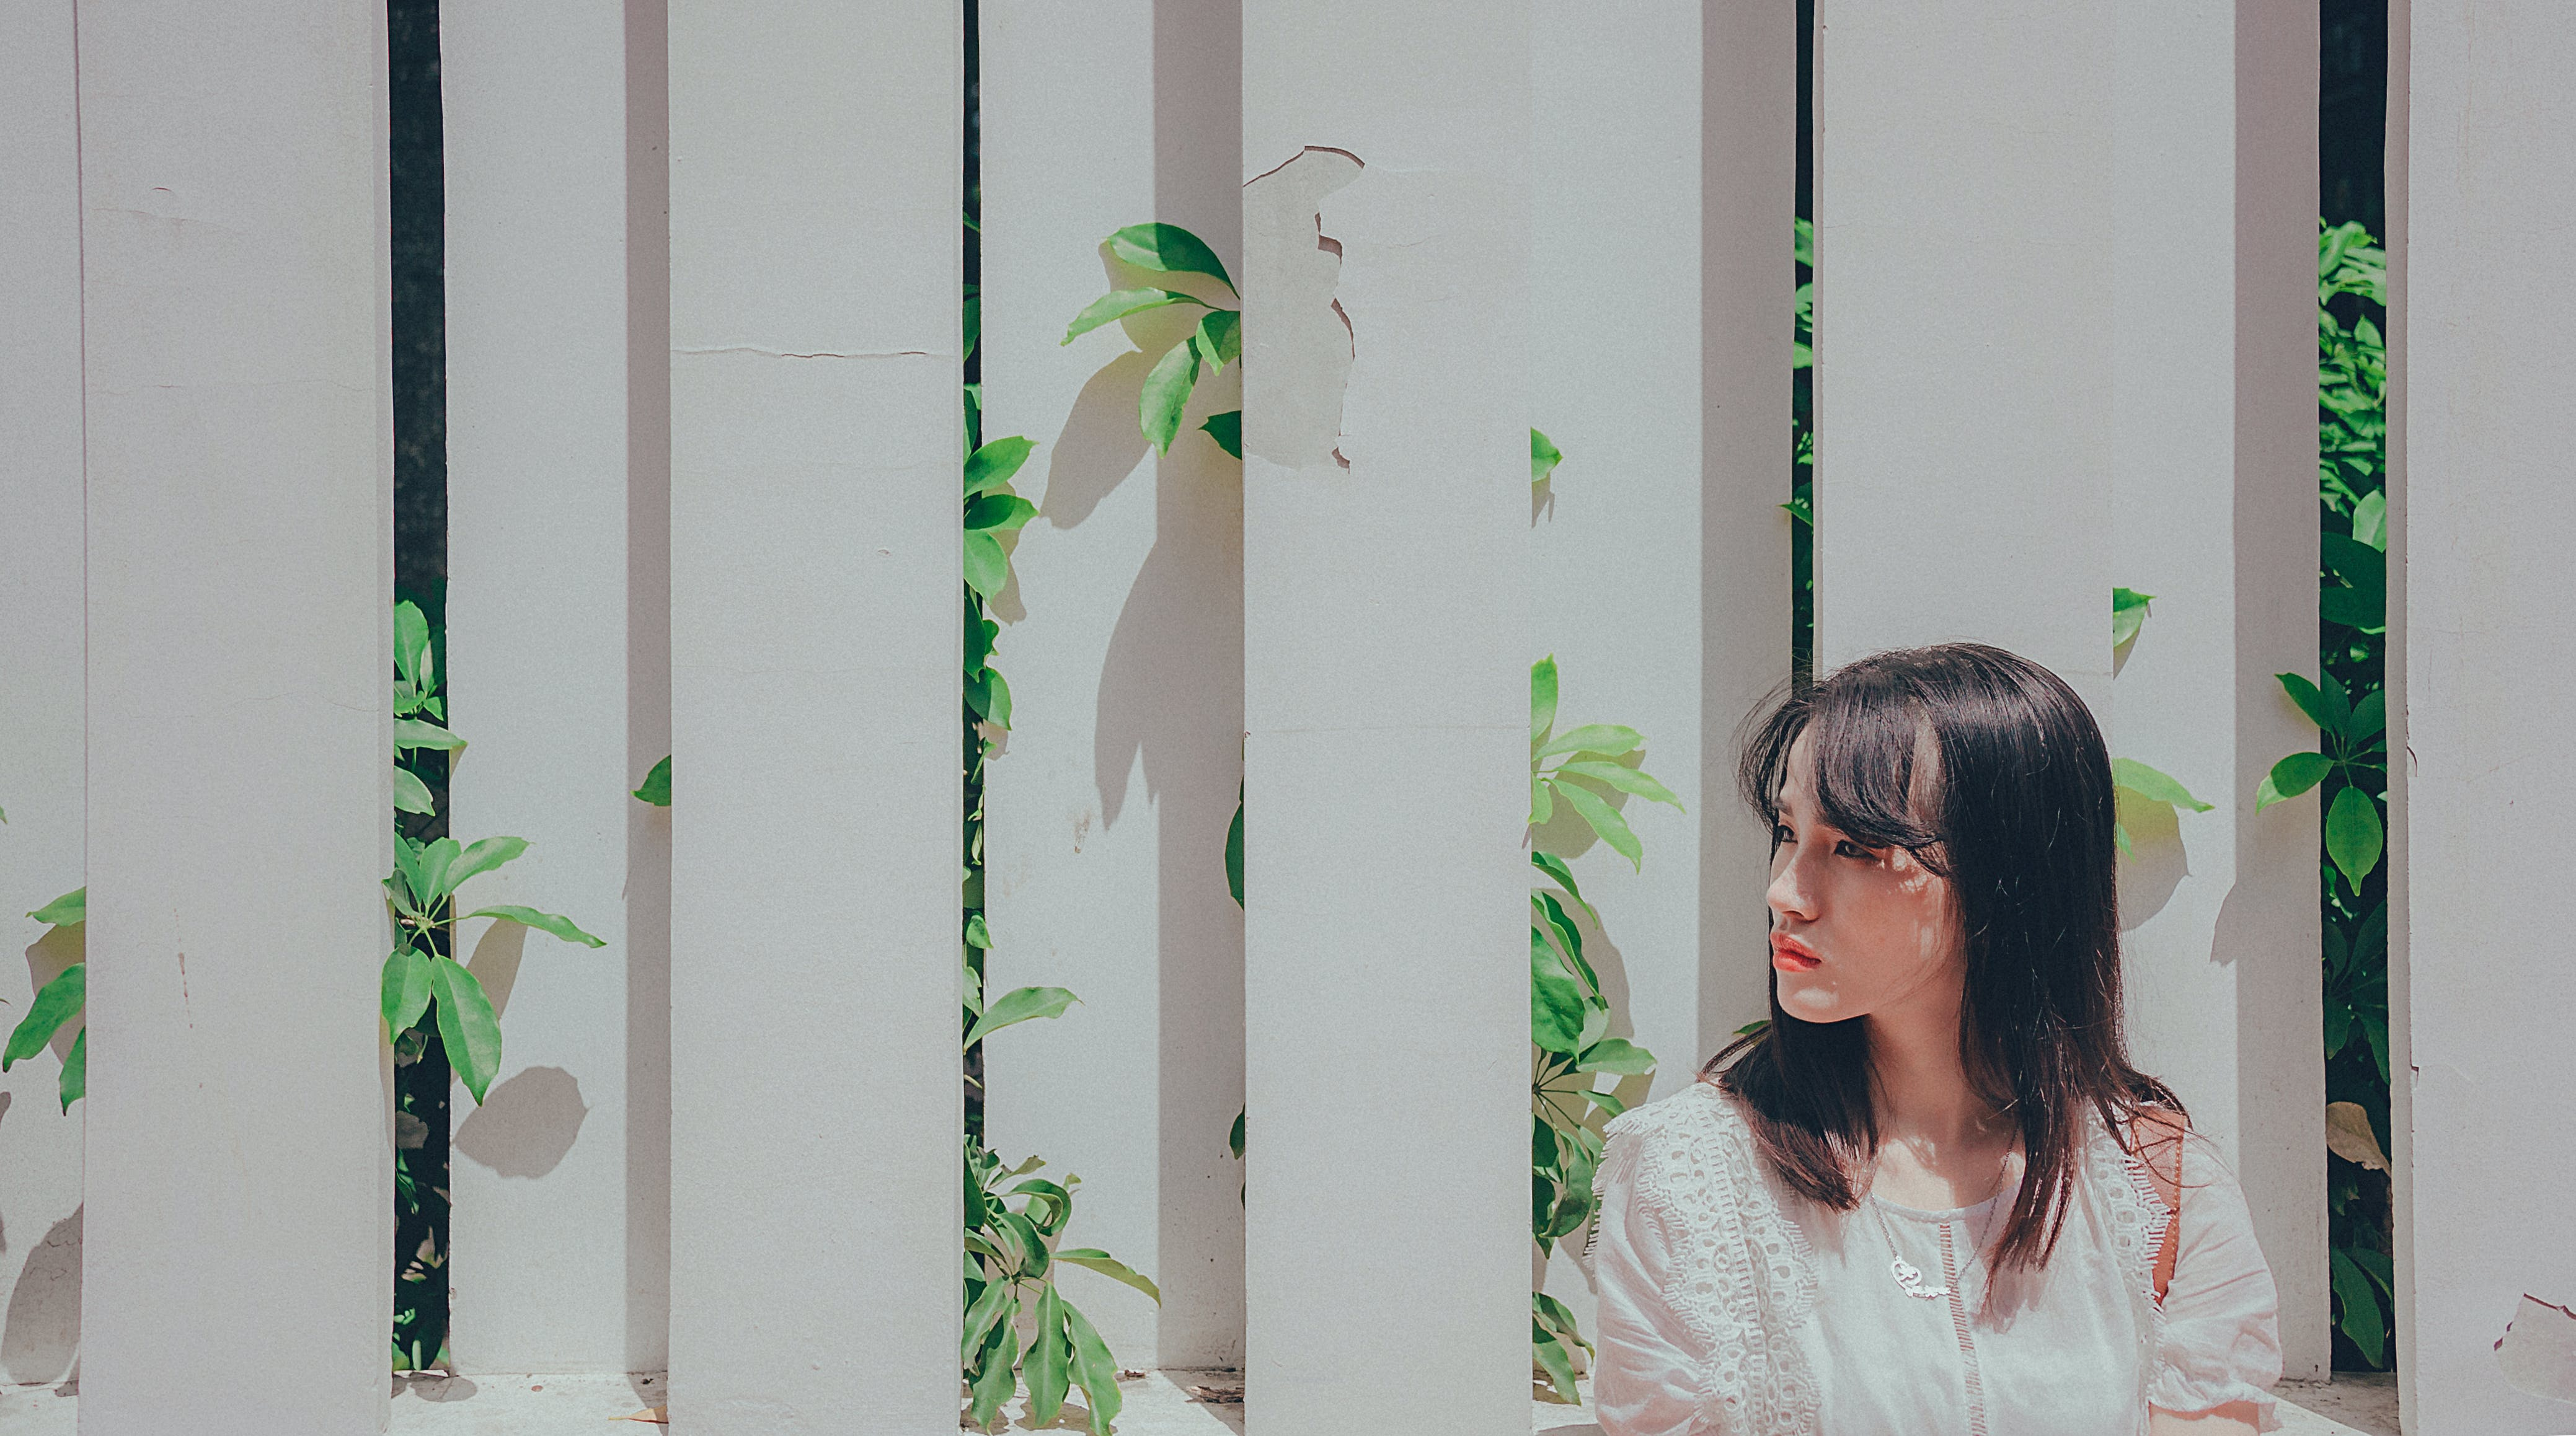 Woman Wearing White Shirt Leaning on White Wooden Fence With Plants